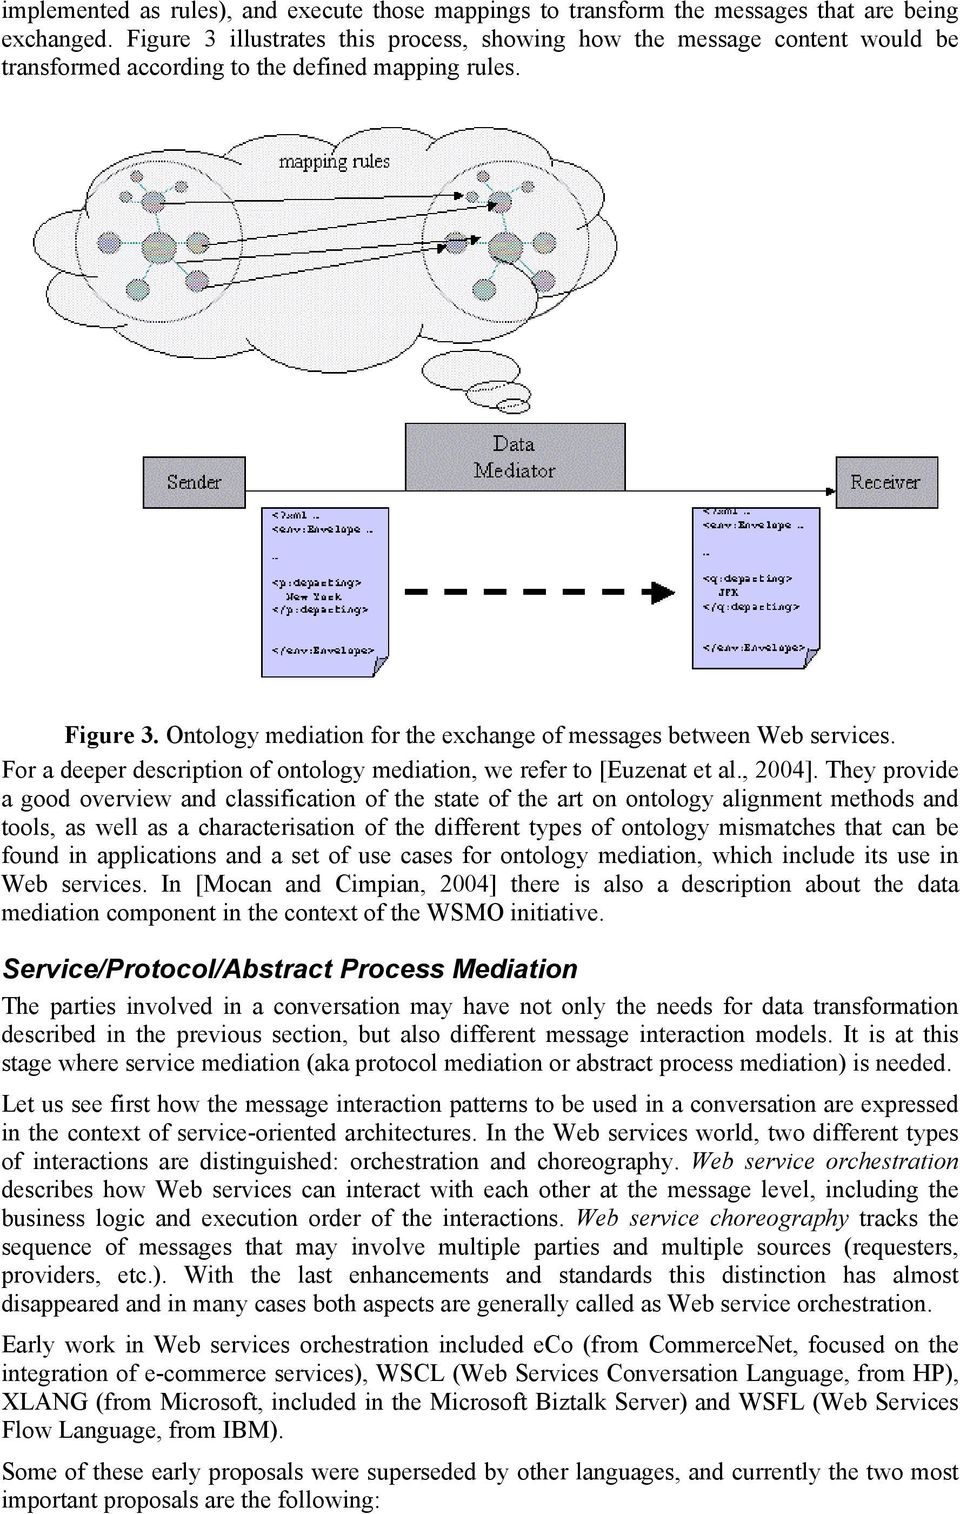 Ontology mediation for the exchange of messages between Web services. For a deeper description of ontology mediation, we refer to [Euzenat et al., 2004].